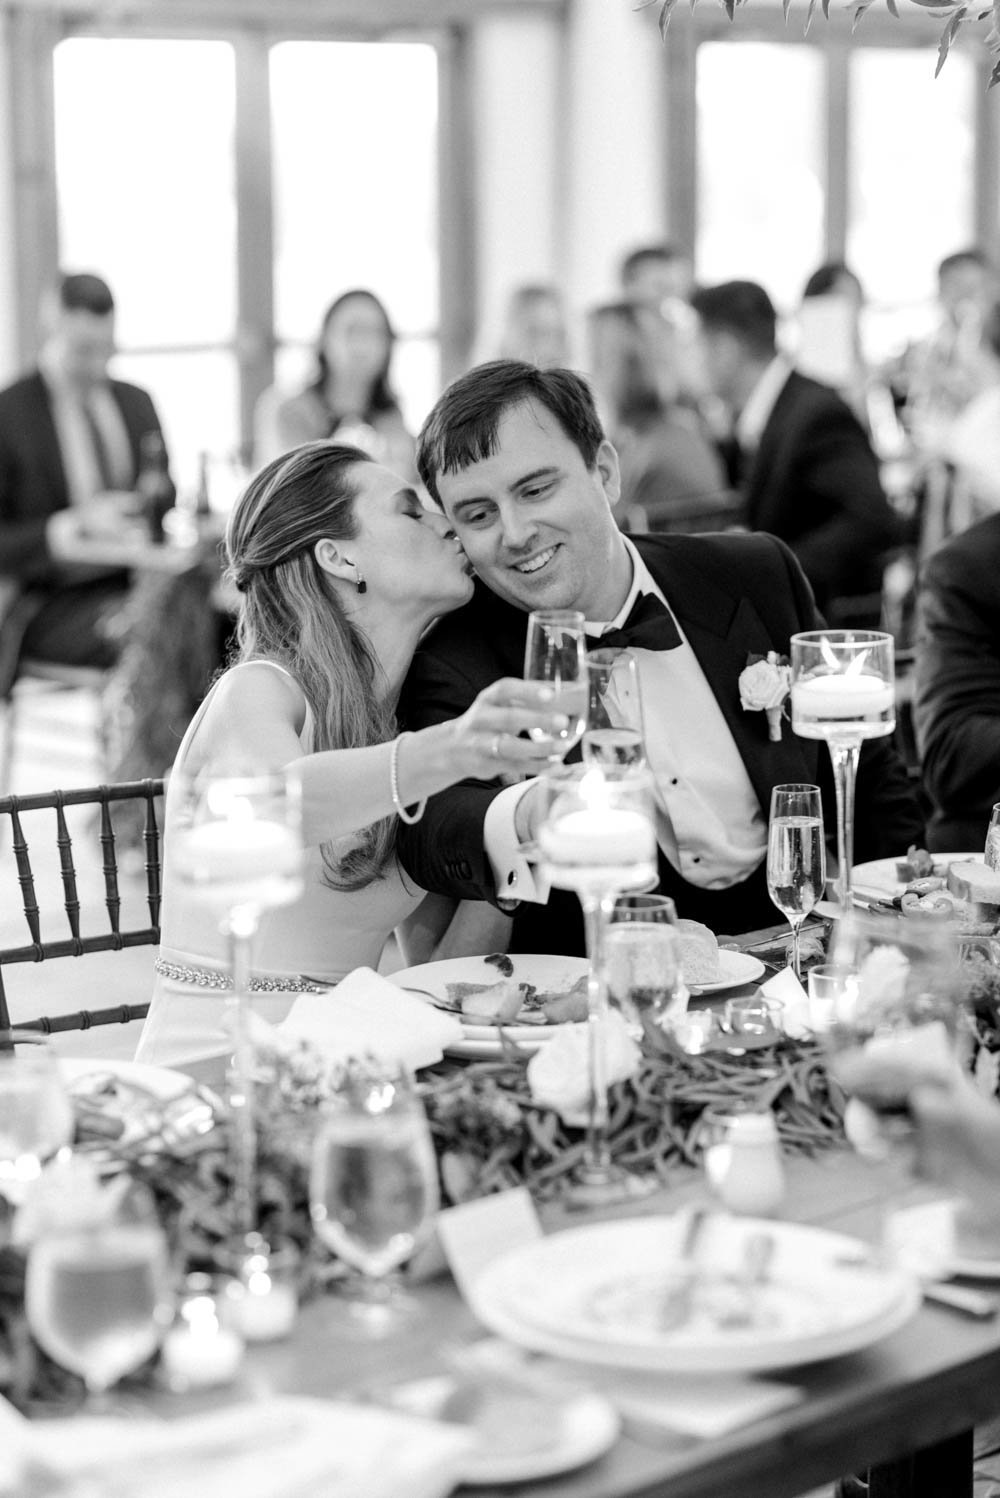 castle-hill-inn-newport-rhode-island-wedding-photographer-photo-82